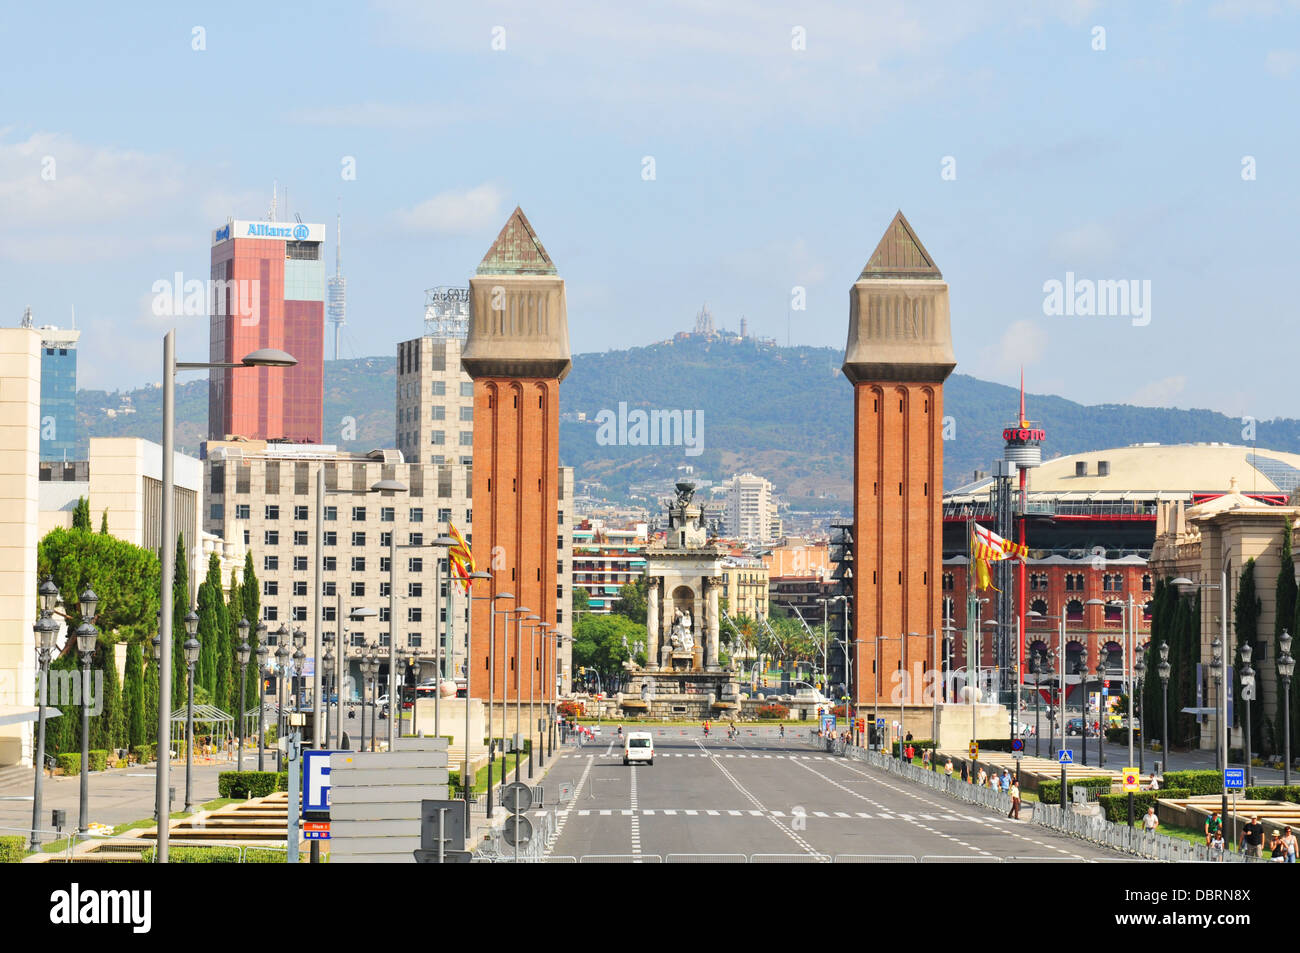 View of the famous Placa d'Espanya, one of Barcelona's most important squares. - Stock Image